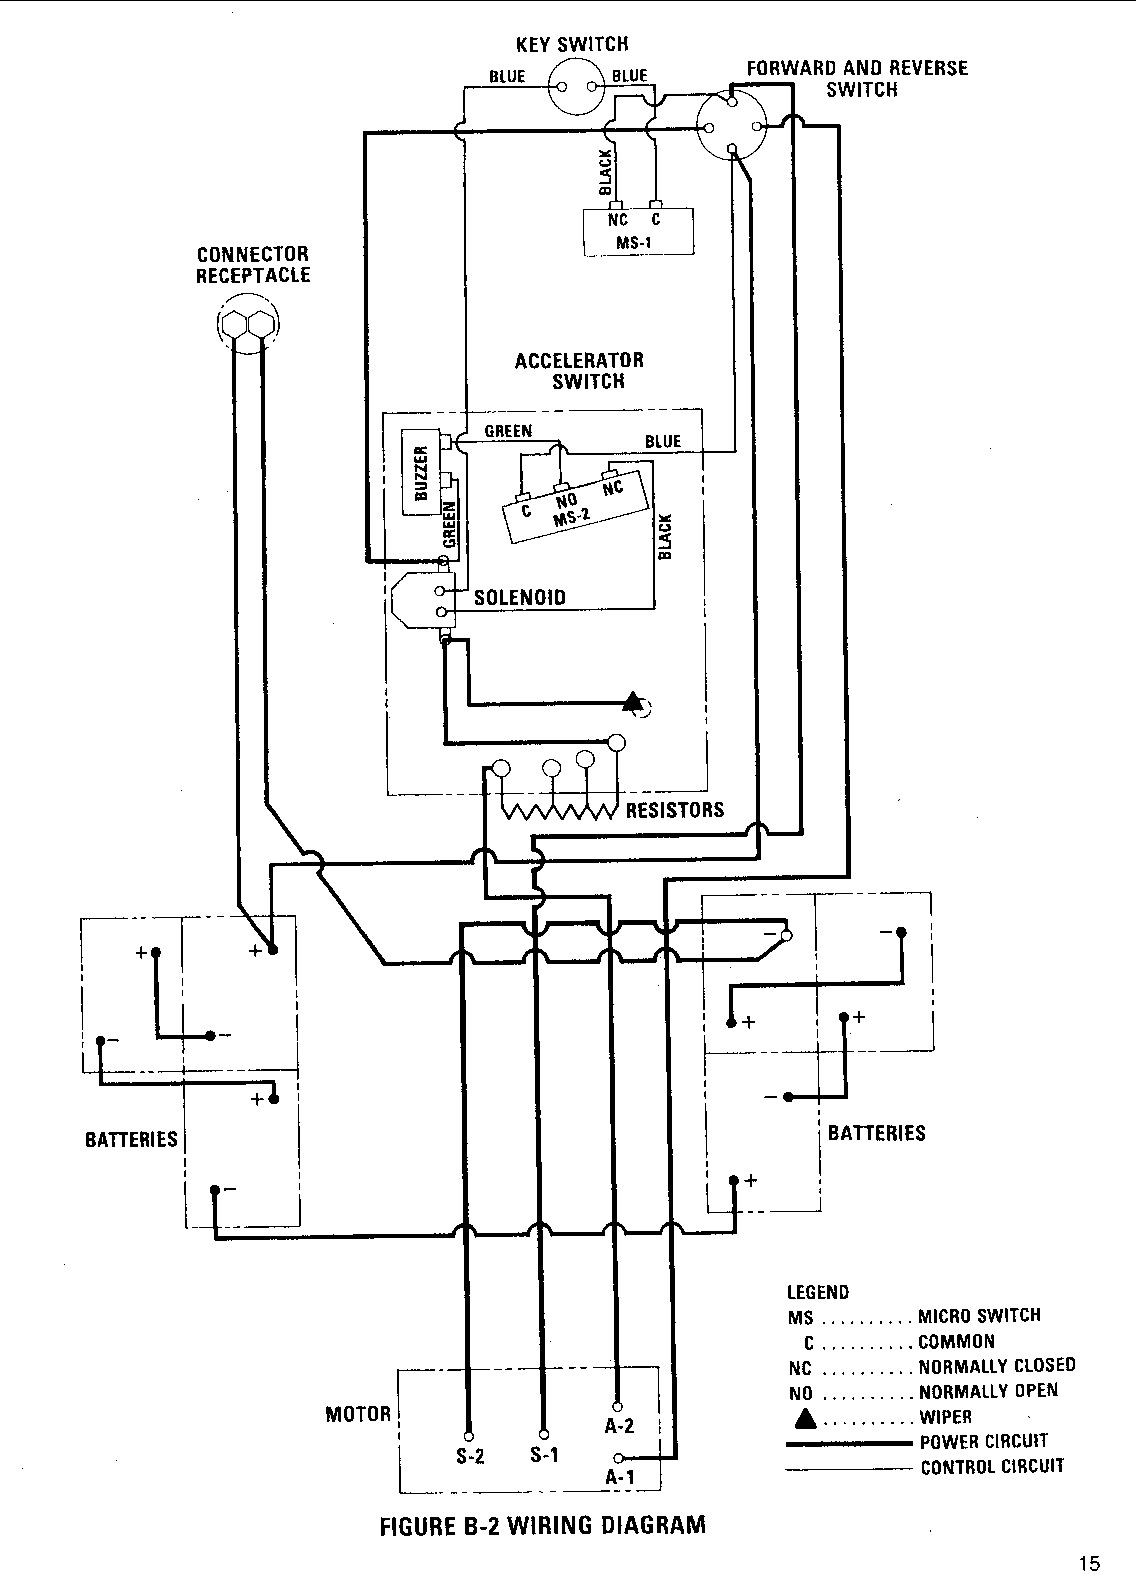 forward reverse switch wiring diagram for capacitor start motor 1976 ezgo golf cart gas engine